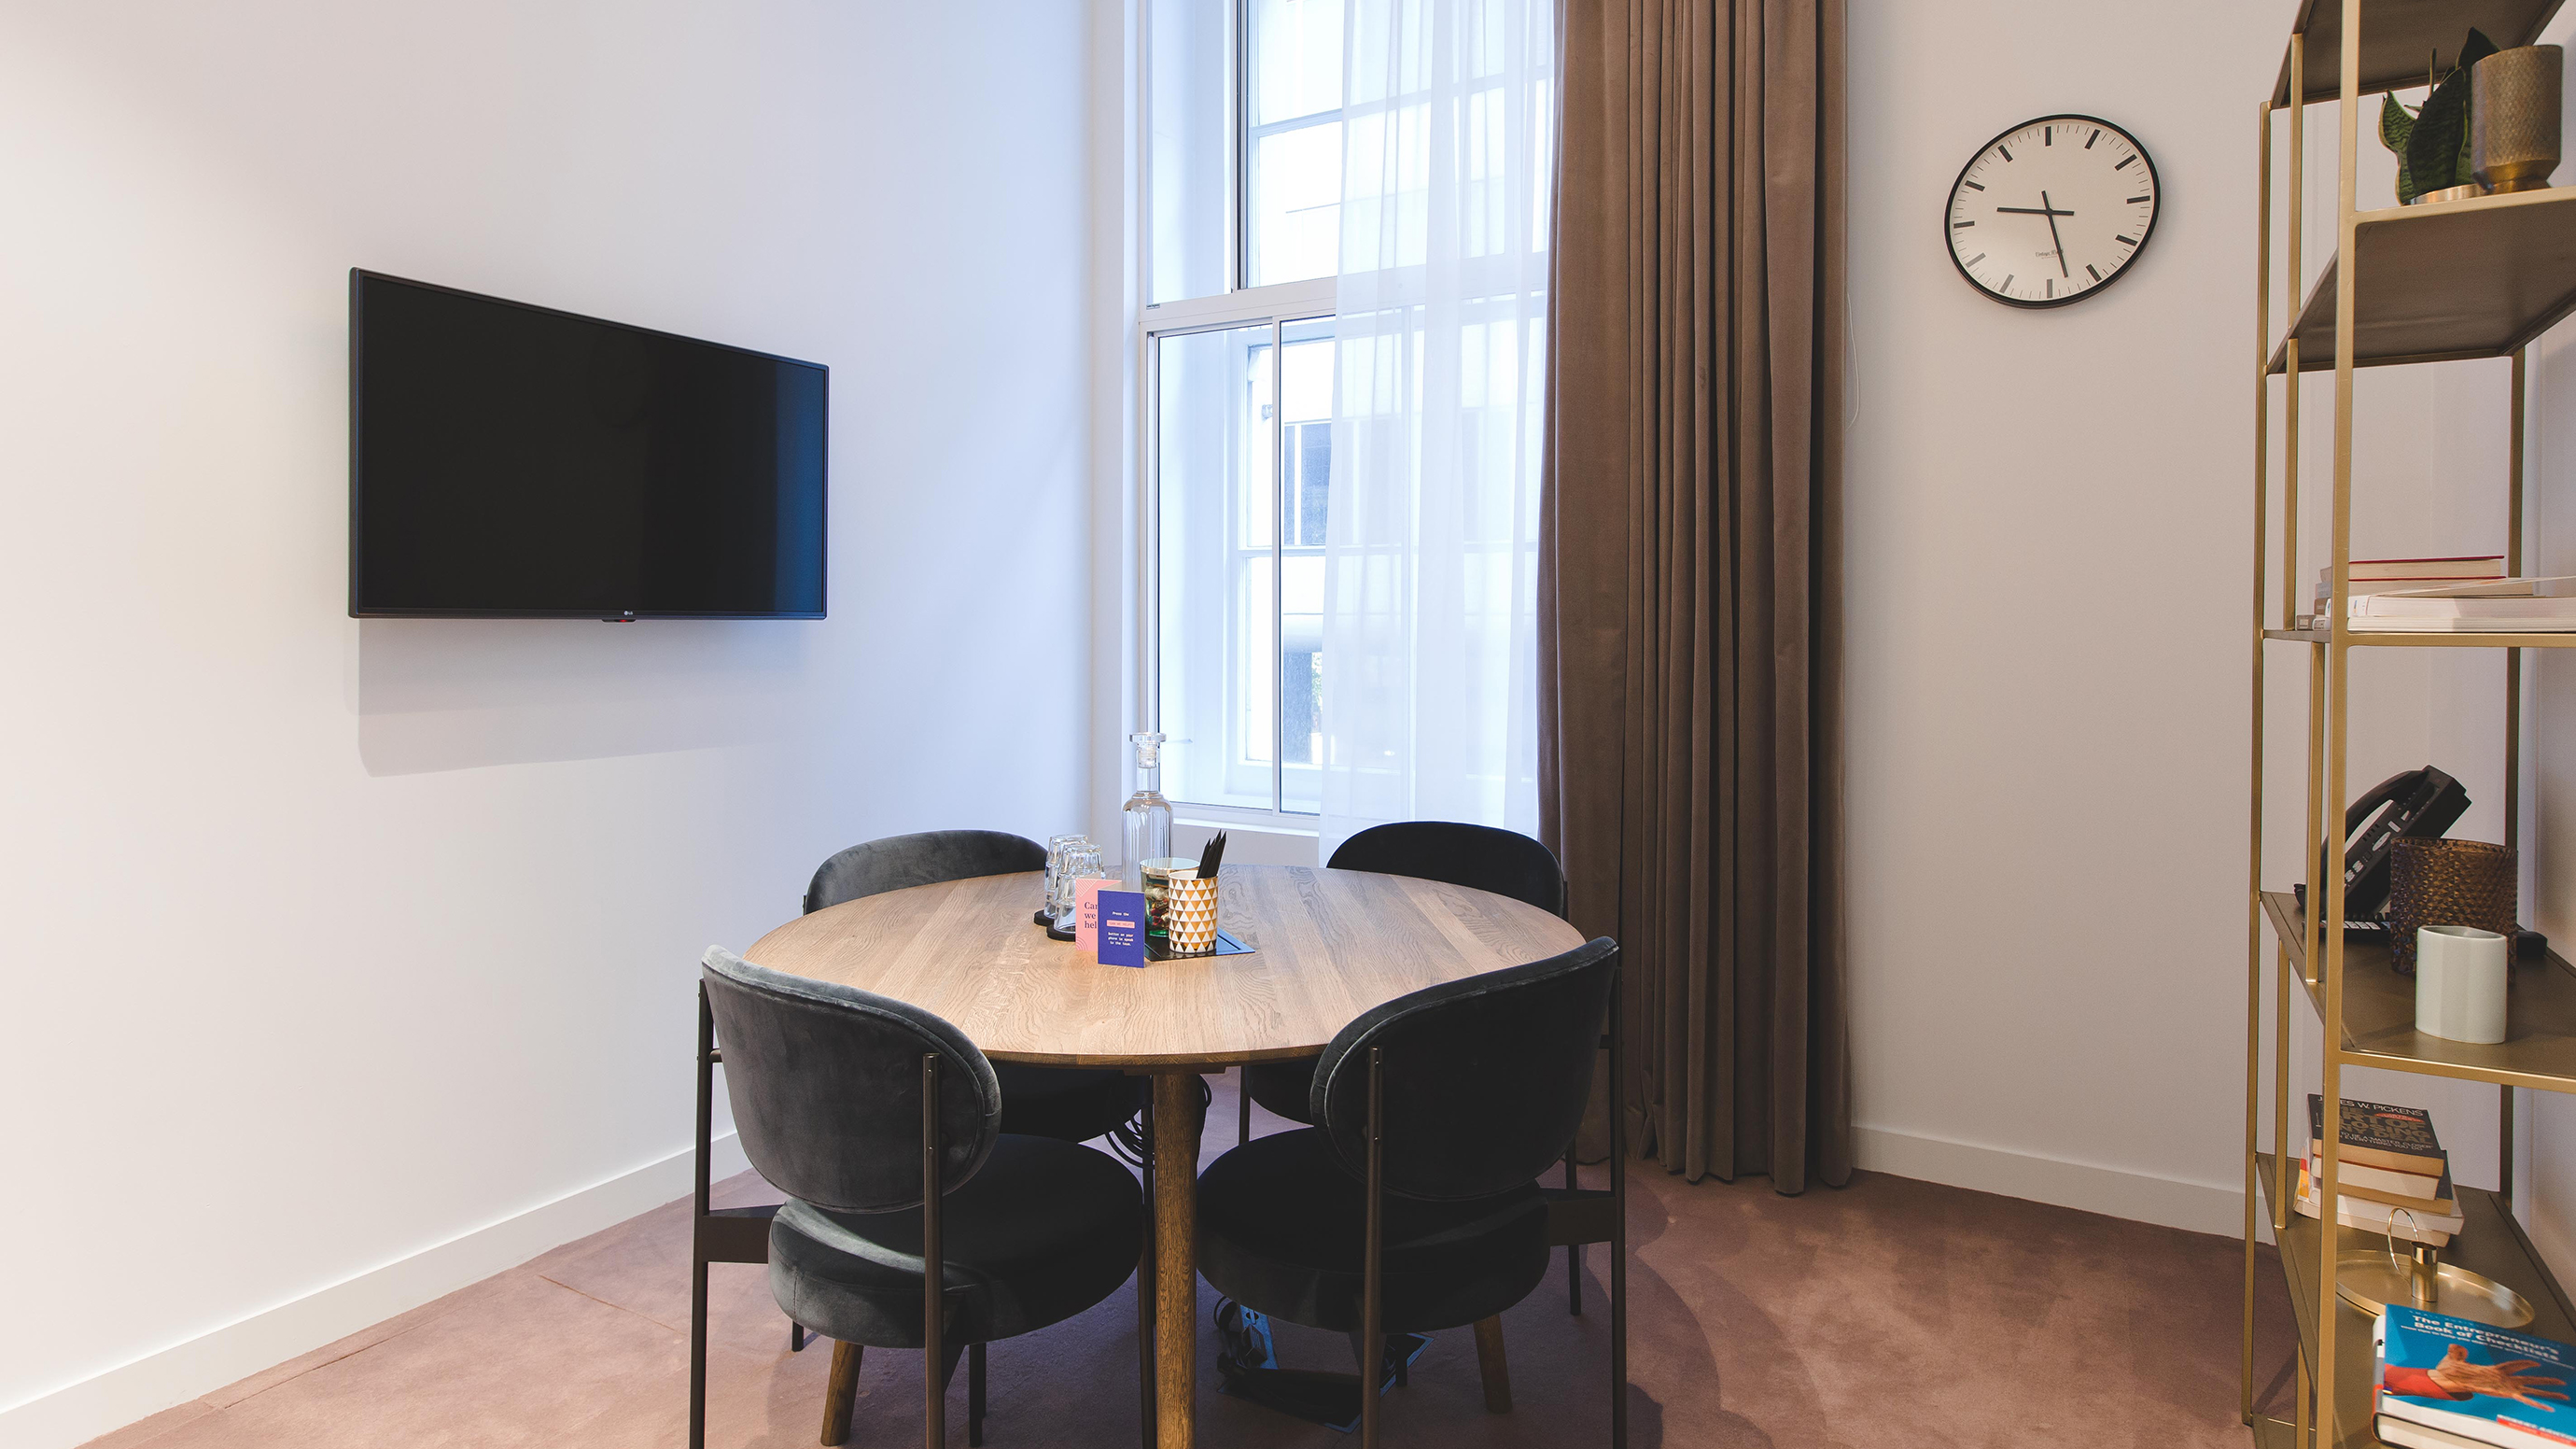 Small meeting room with brown wooden round table and black chairs and tv screen and shelves at TOG building Belle House London